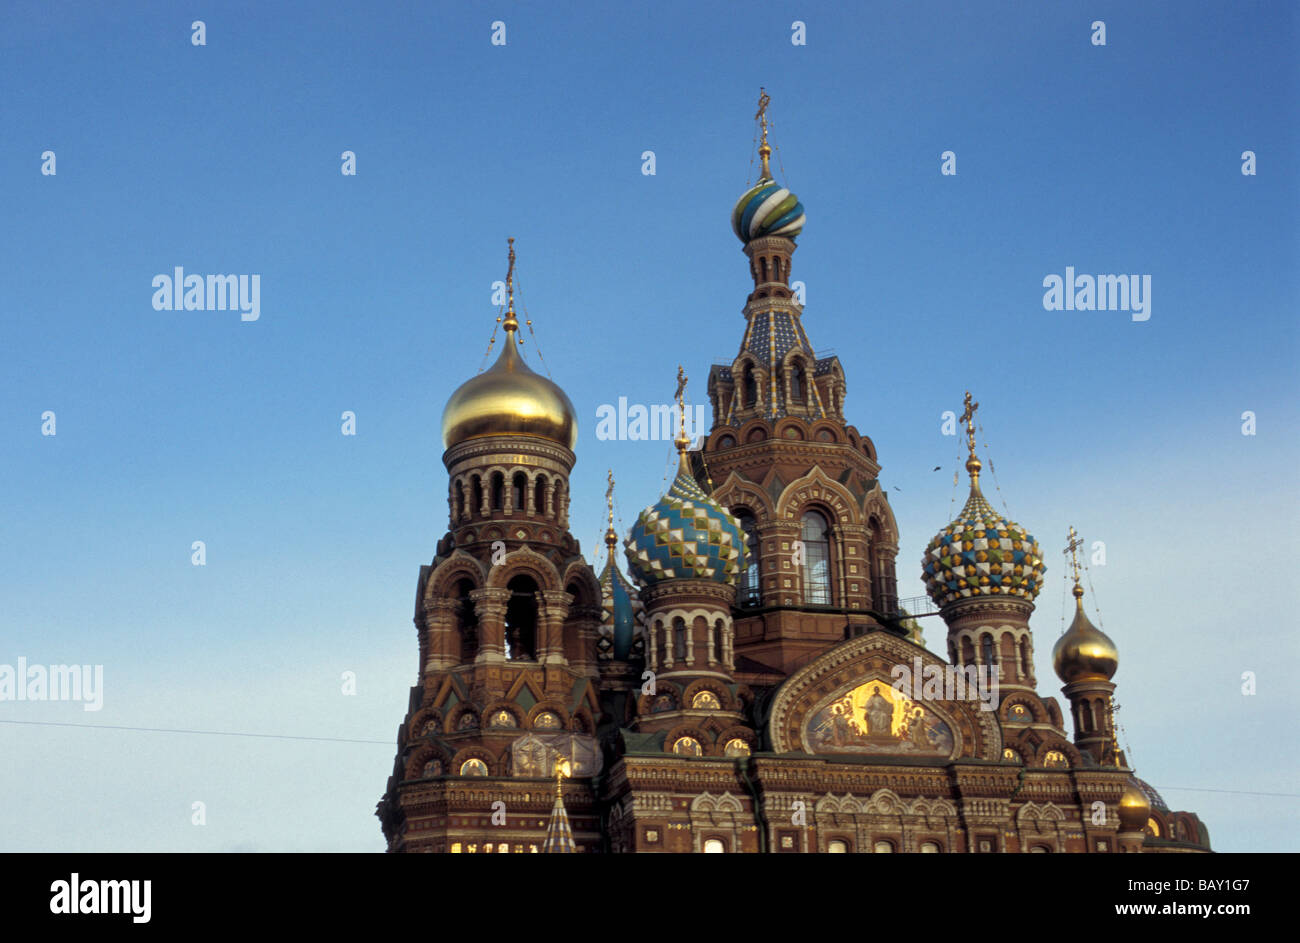 The richly decorated onion domes of the church of the Savior on Blood, St. Petersburg, Russia - Stock Image